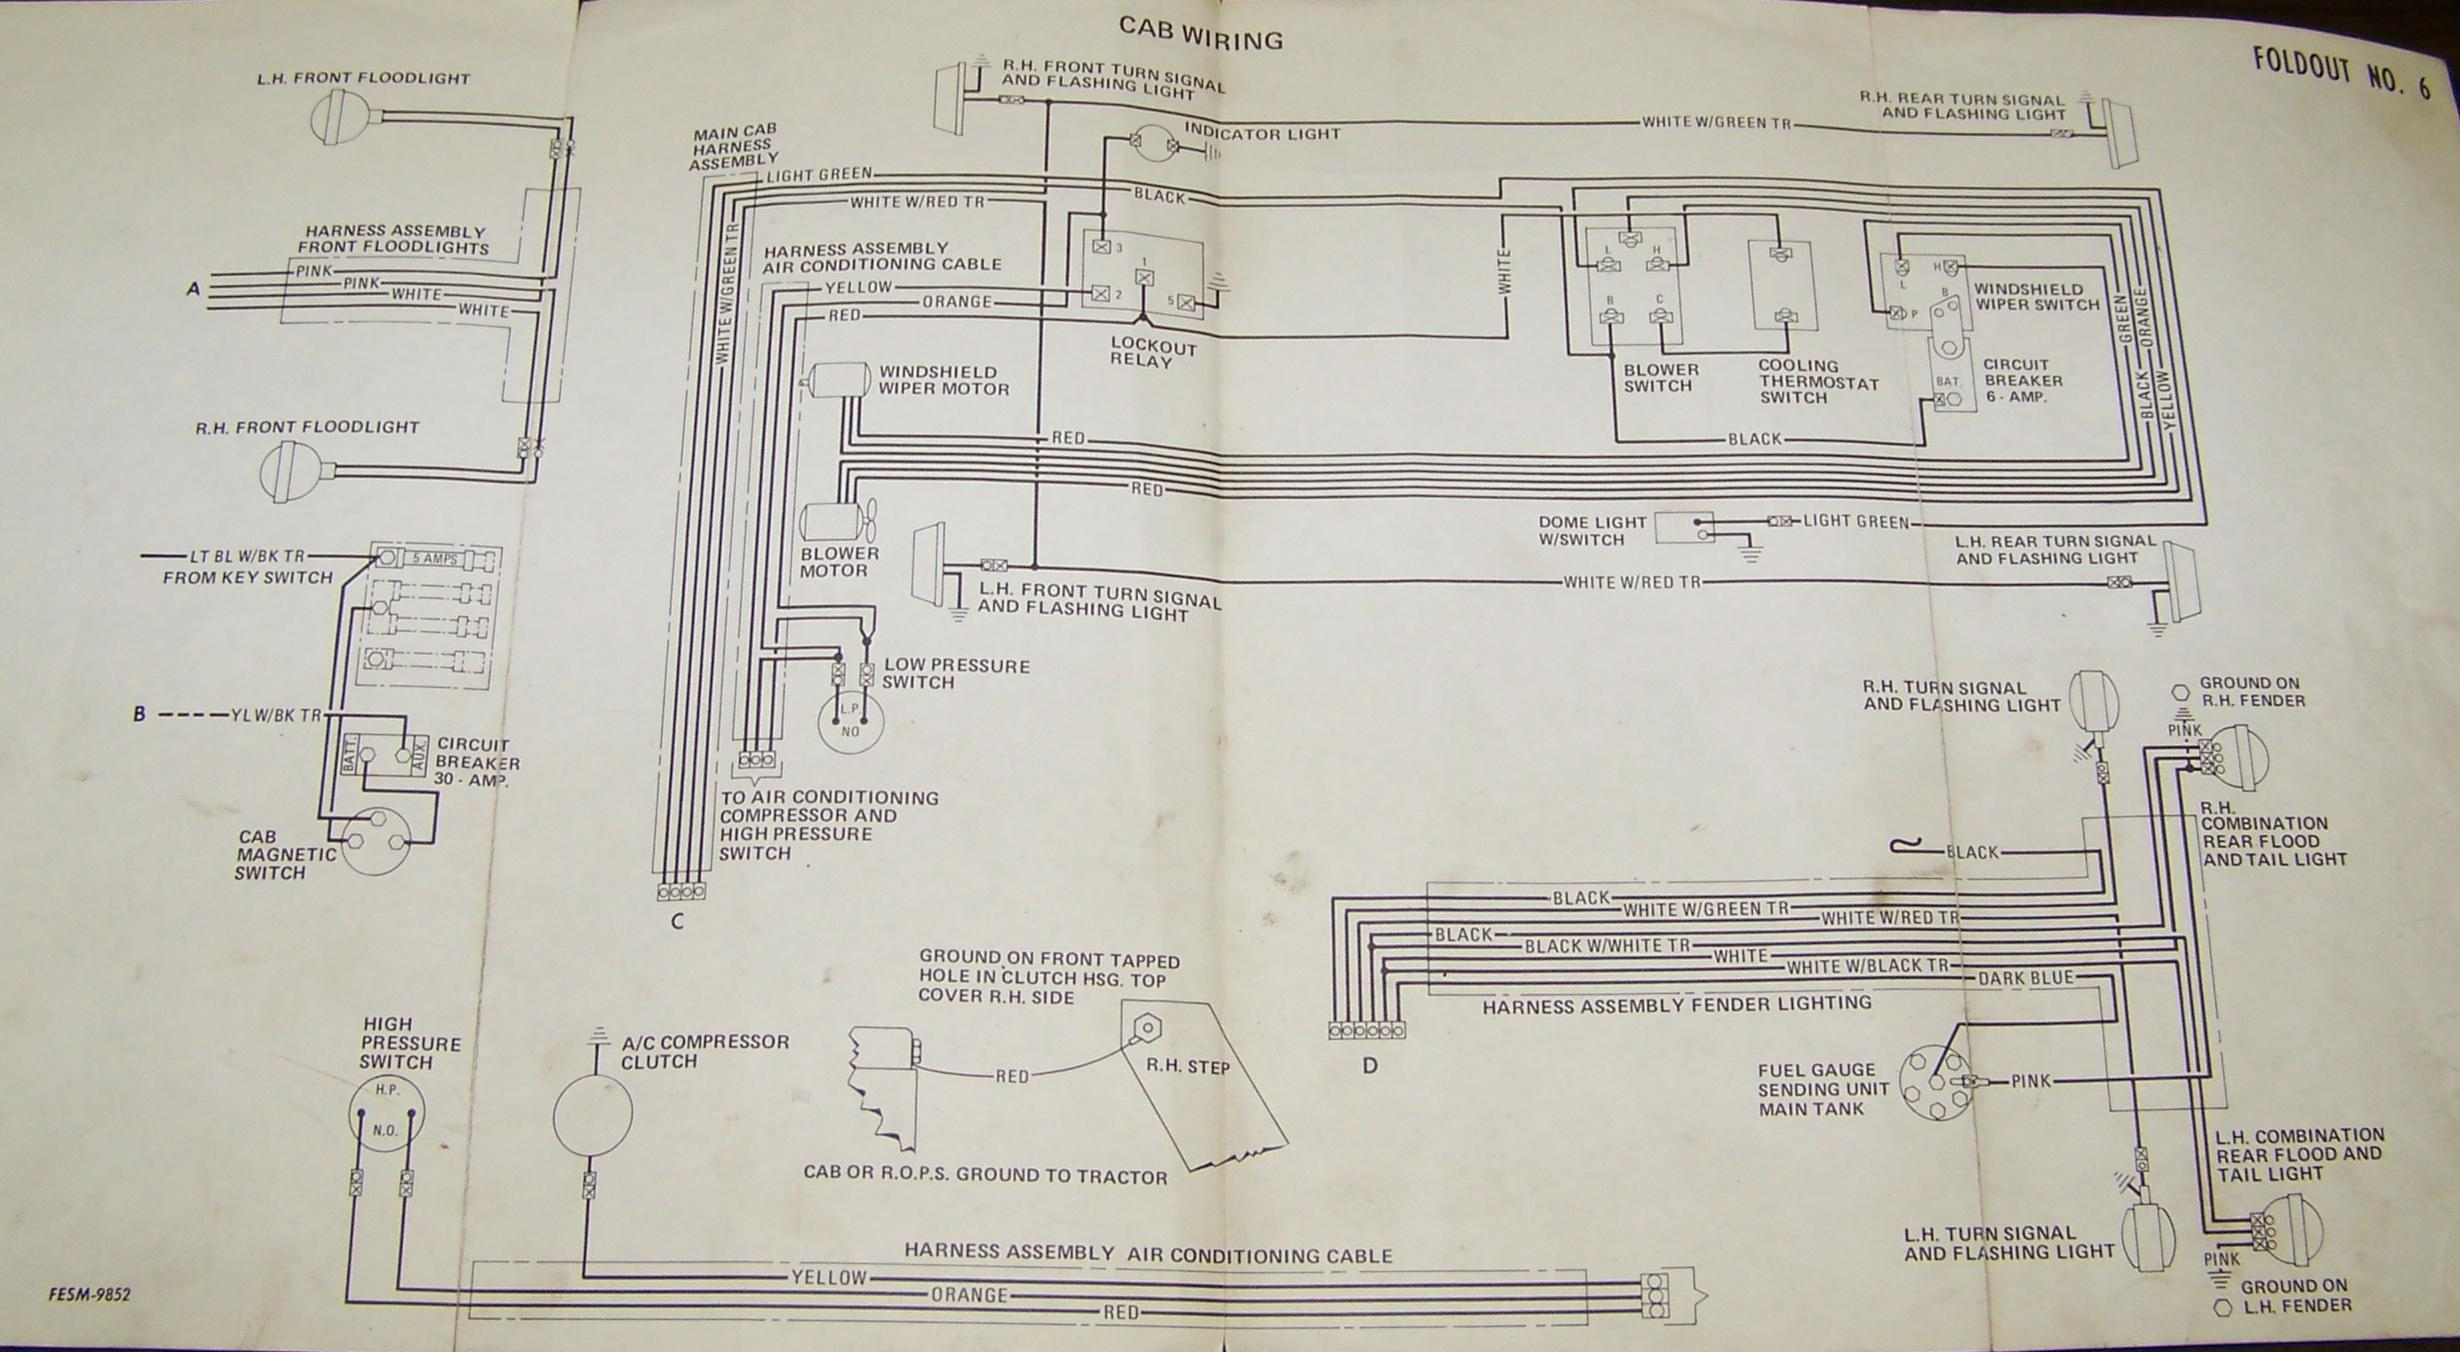 86series6 radio wiring diagram ih 1586 ih 1066 wiring diagram \u2022 wiring simple tractor wiring diagram at alyssarenee.co